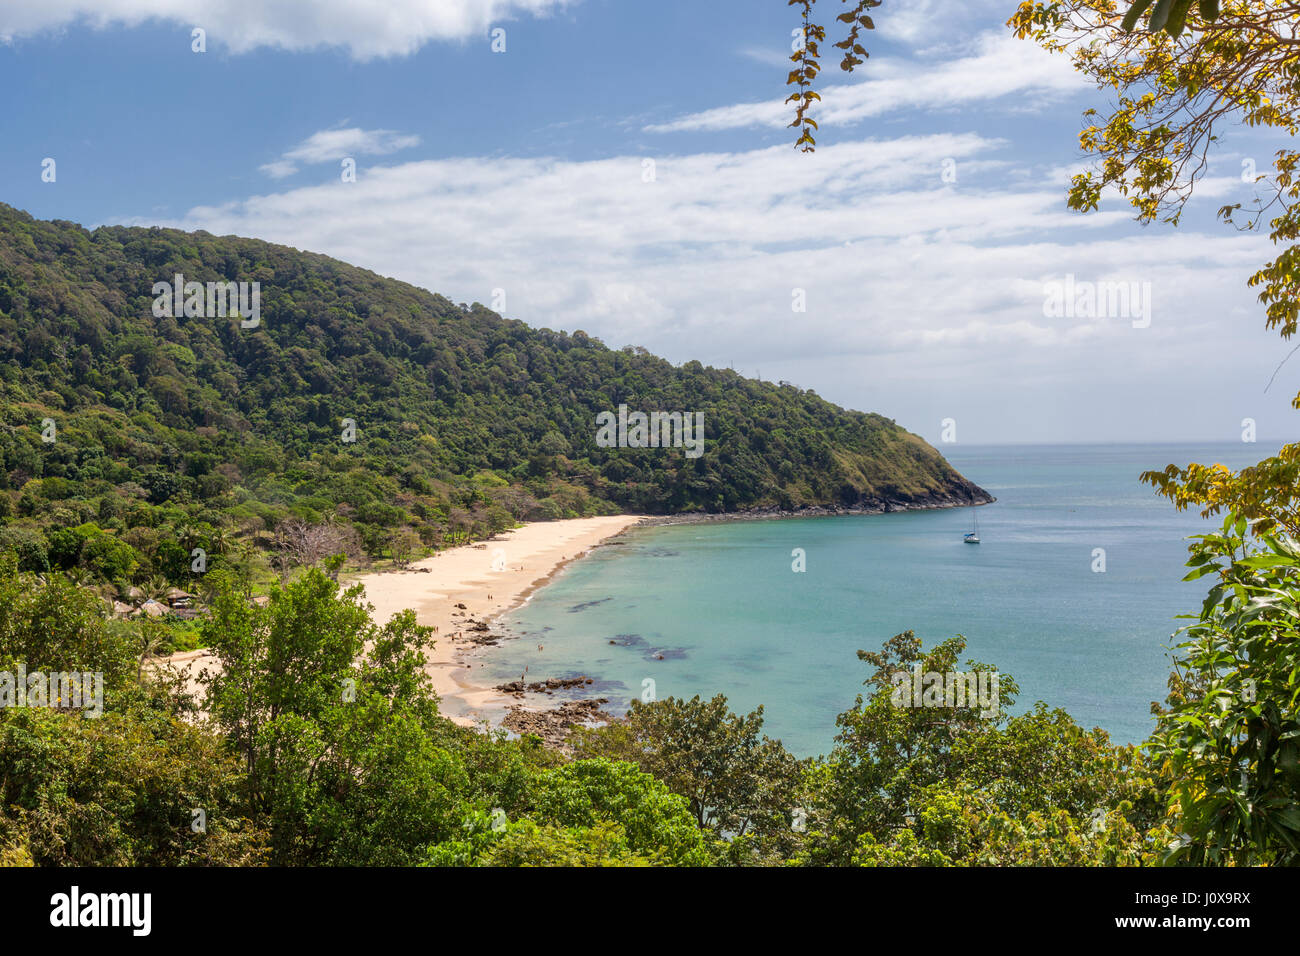 View of Bamboo Bay Beach with Rainforest behind in Koh Lanta Yai, Krabi Province, Thailand, Southeast Asia - Stock Image